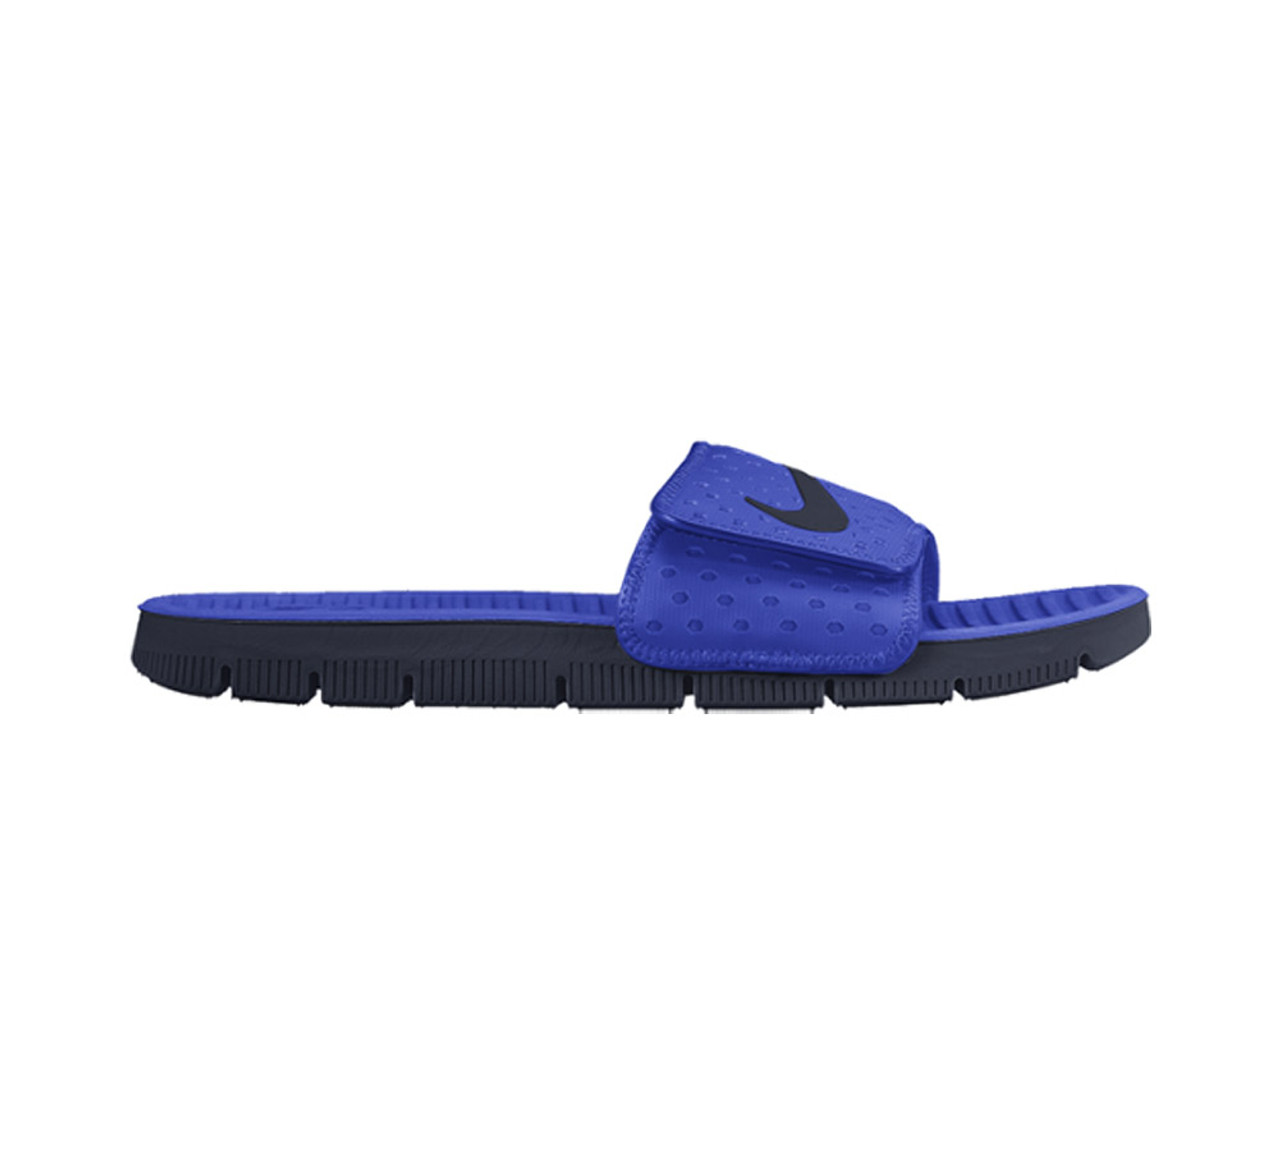 6423eccde605 Nike Men s Flex Motion Slide Racer Blue Obsidian - Shop now   Shoolu.com